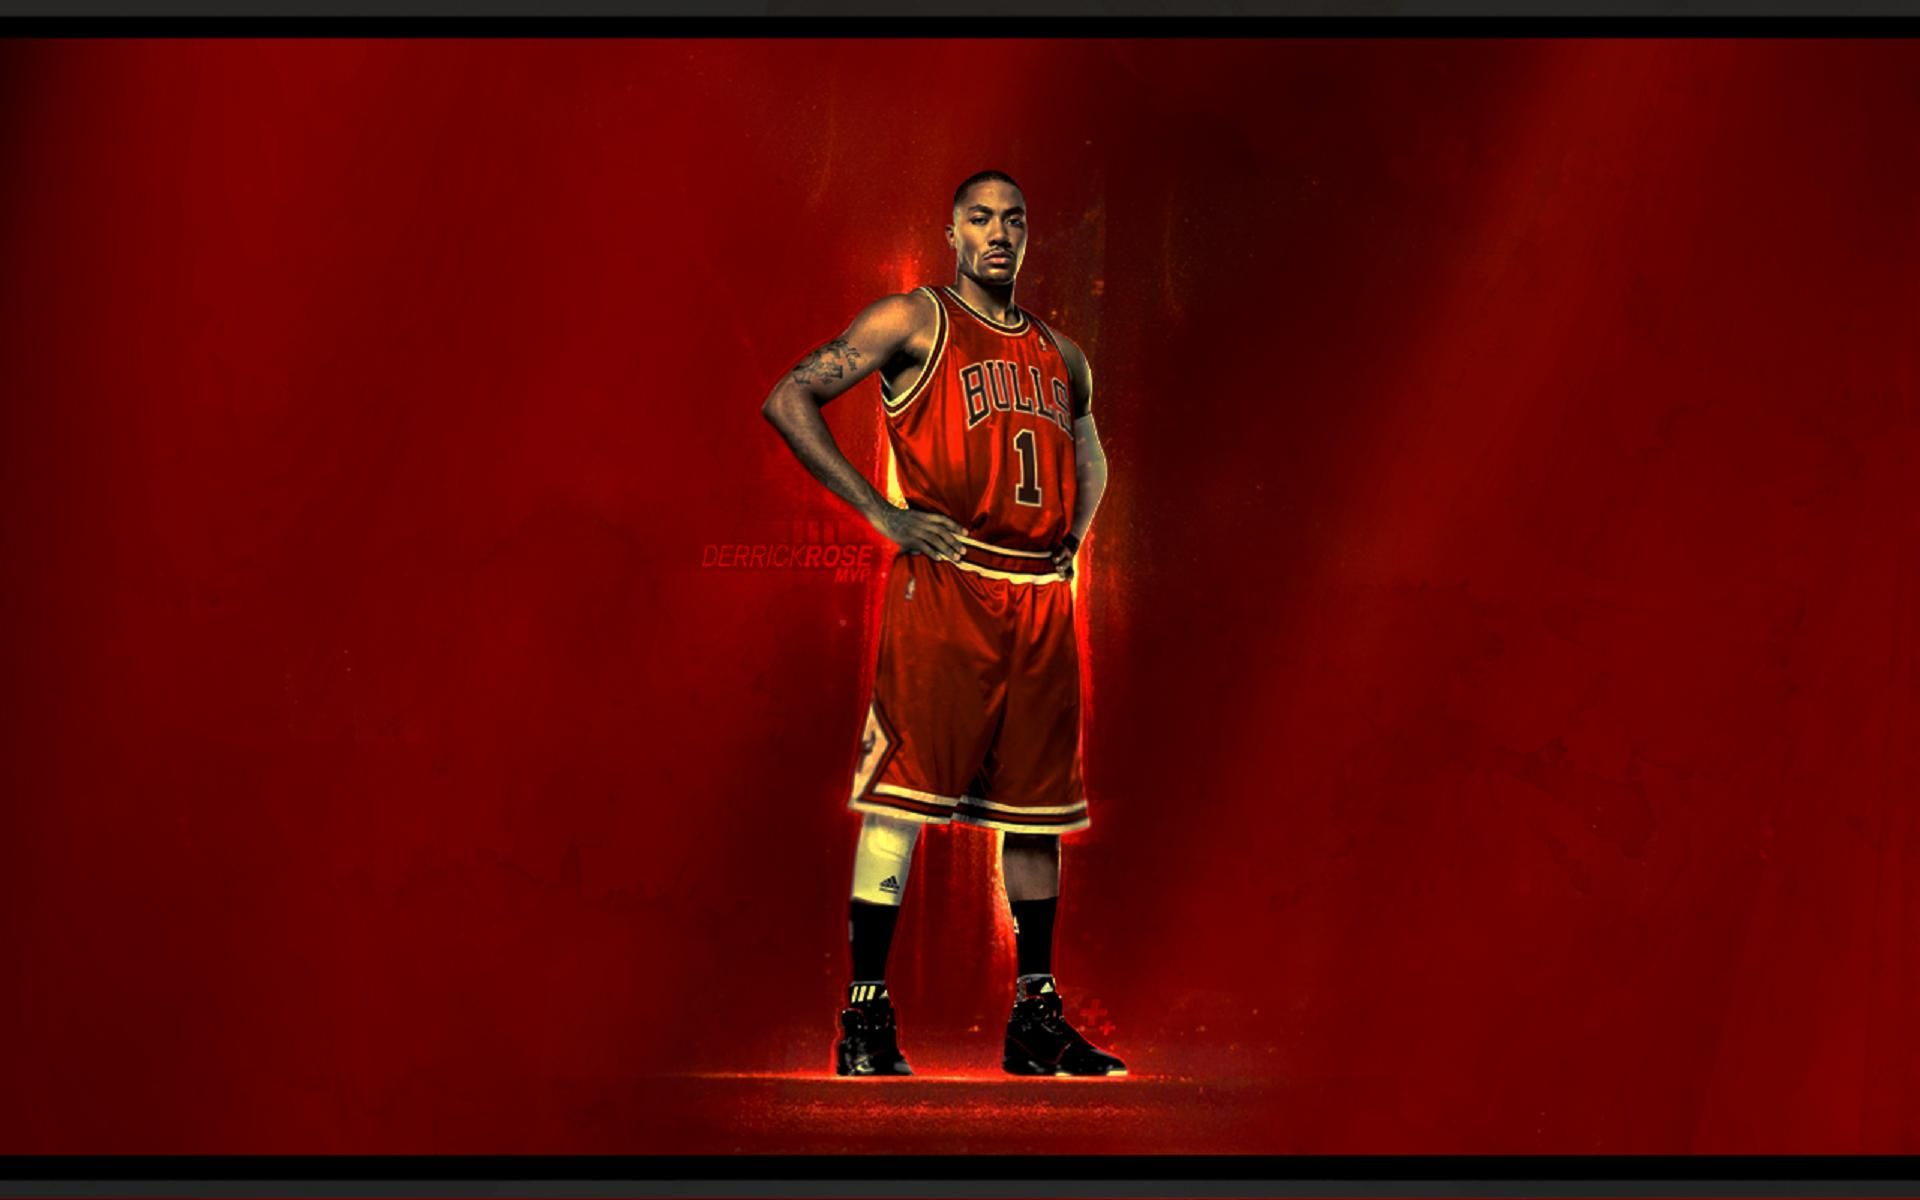 Derrick rose hd wallpapers free download latest derrick rose hd derrick rose hd wallpapers free download latest derrick rose hd wallpapers for computer mobile voltagebd Image collections